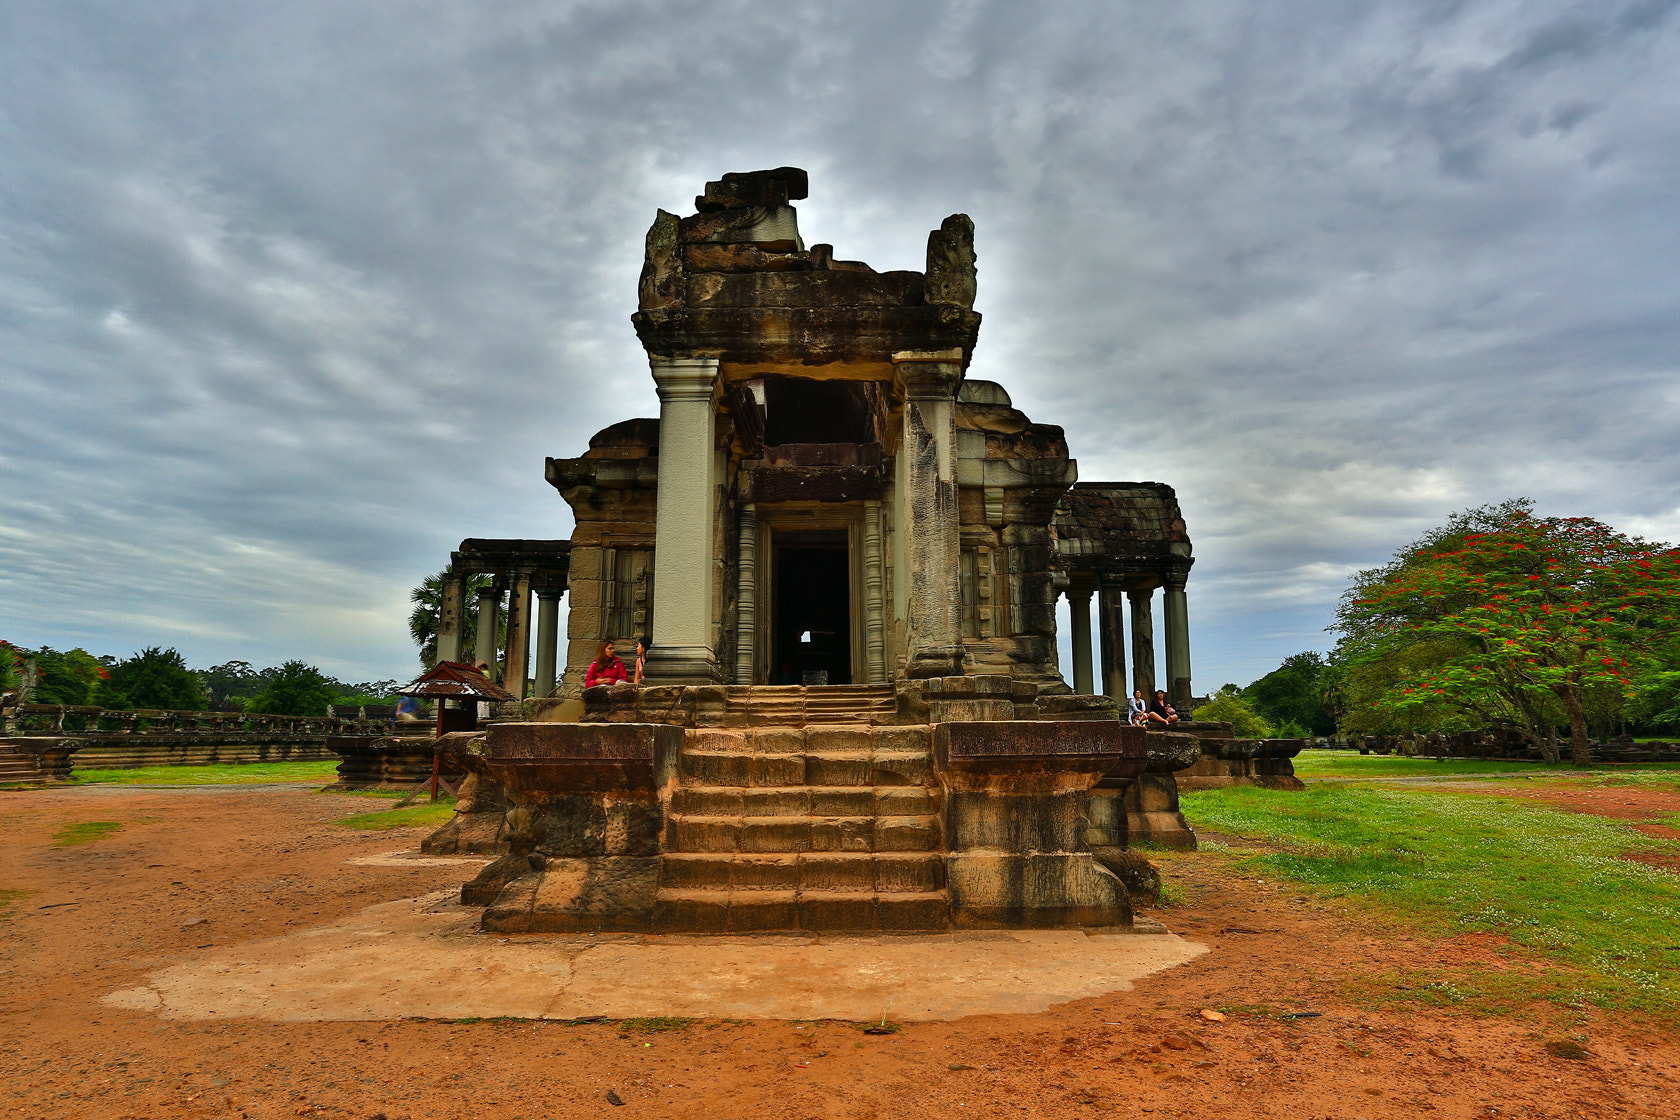 Photograph Angkor Wat by Amarchand Suddapalli on 500px